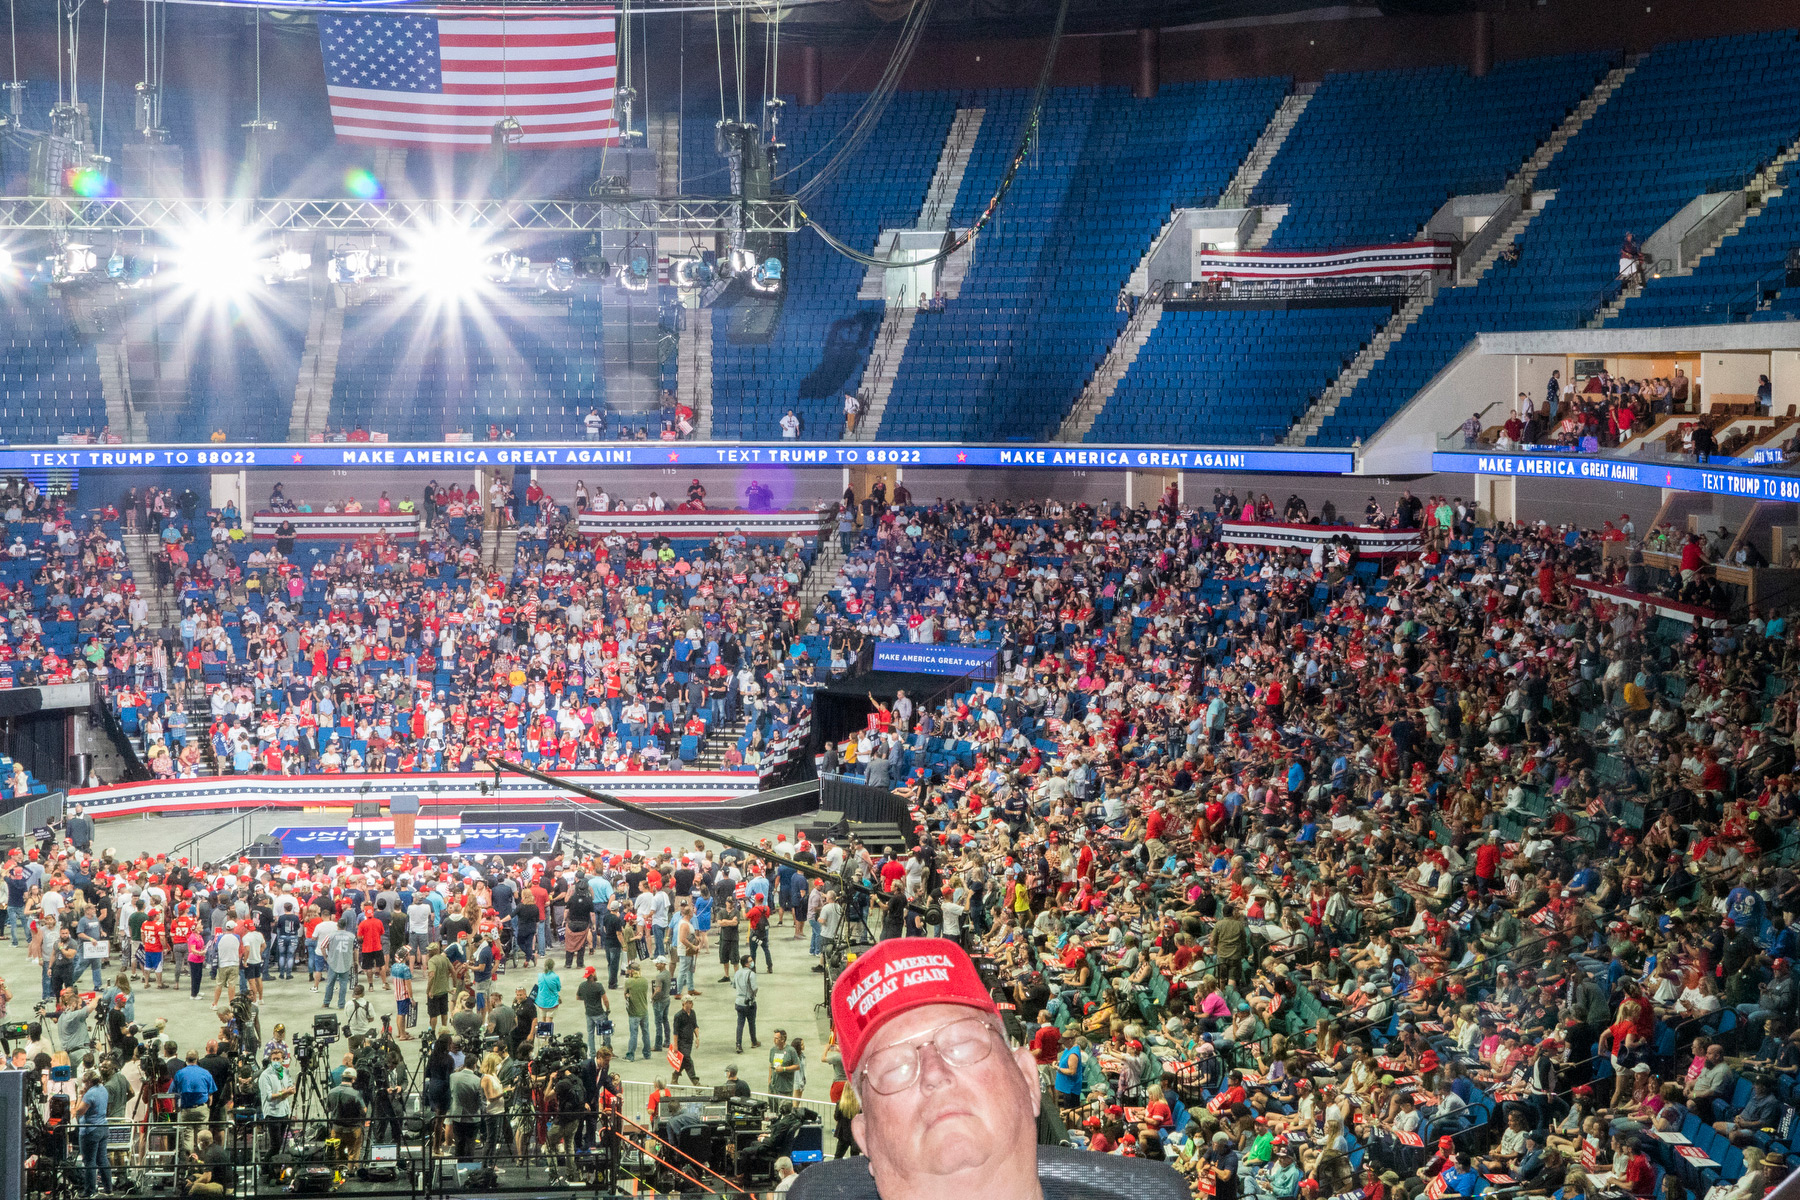 Tulsa, June 20, 2020.  I feel like this country is increasingly living in parallel worlds. The Trump rally today was bizarre. Indoors, everyone bunched together, barely anybody wearing a mask. I looked like an alien in my respirator and goggles. I was mocked a bit, and responded with my story of seeing trucks filled with bodies in New York at the height of the pandemic's first wave in America. I suppose this will be a super-spreader event. George Floyd was not mentioned even once. As people started to stream out during the 90-minute speech, I left to see if there would be confrontations with protesters. There were some scattered shouting matches and a bit of scuffling, but mostly the two groups left one another alone. One attendee of the rally carried a handmade cross, and a protester tried to snatch it out of his hand. He yanked it back, held it in the air and started chanting, 'Peace, peace, peace.' The crowd of protesters and Trump supporters around him took up the chant, filling the air. That night, my colleague Ruddy Roye and I sat down with some Trump supporters at our hotel and had drinks. It was a surprisingly thoughtful and nuanced conversation.